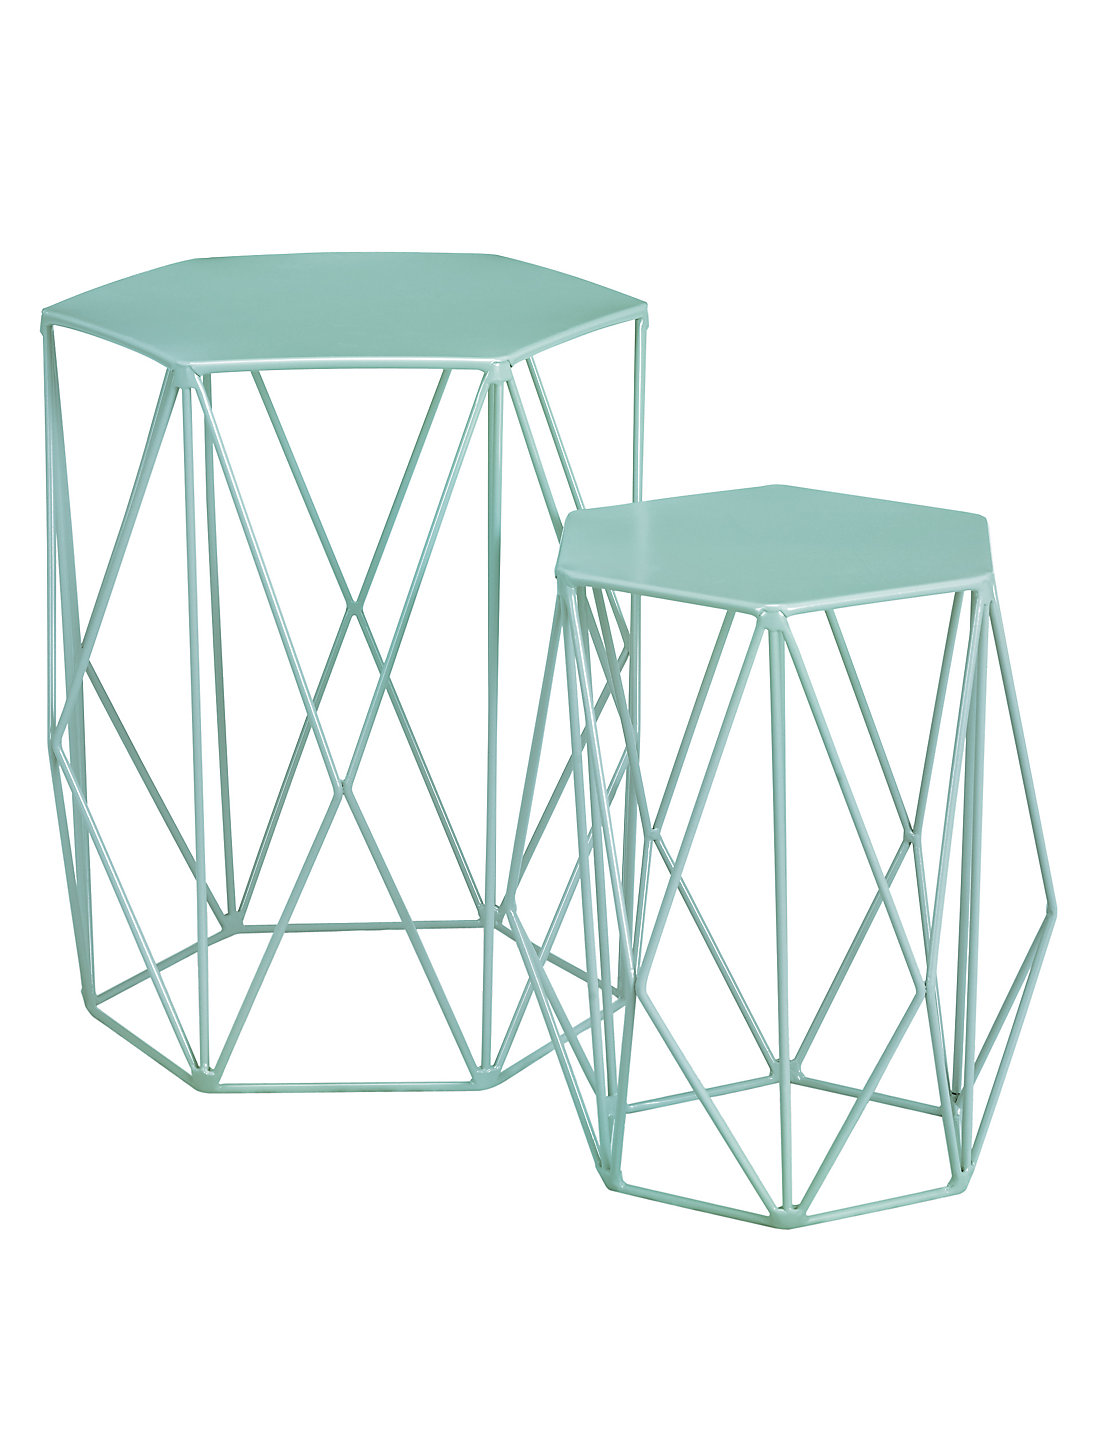 Wire nest of tables mint ms wire nest of tables mint geotapseo Choice Image